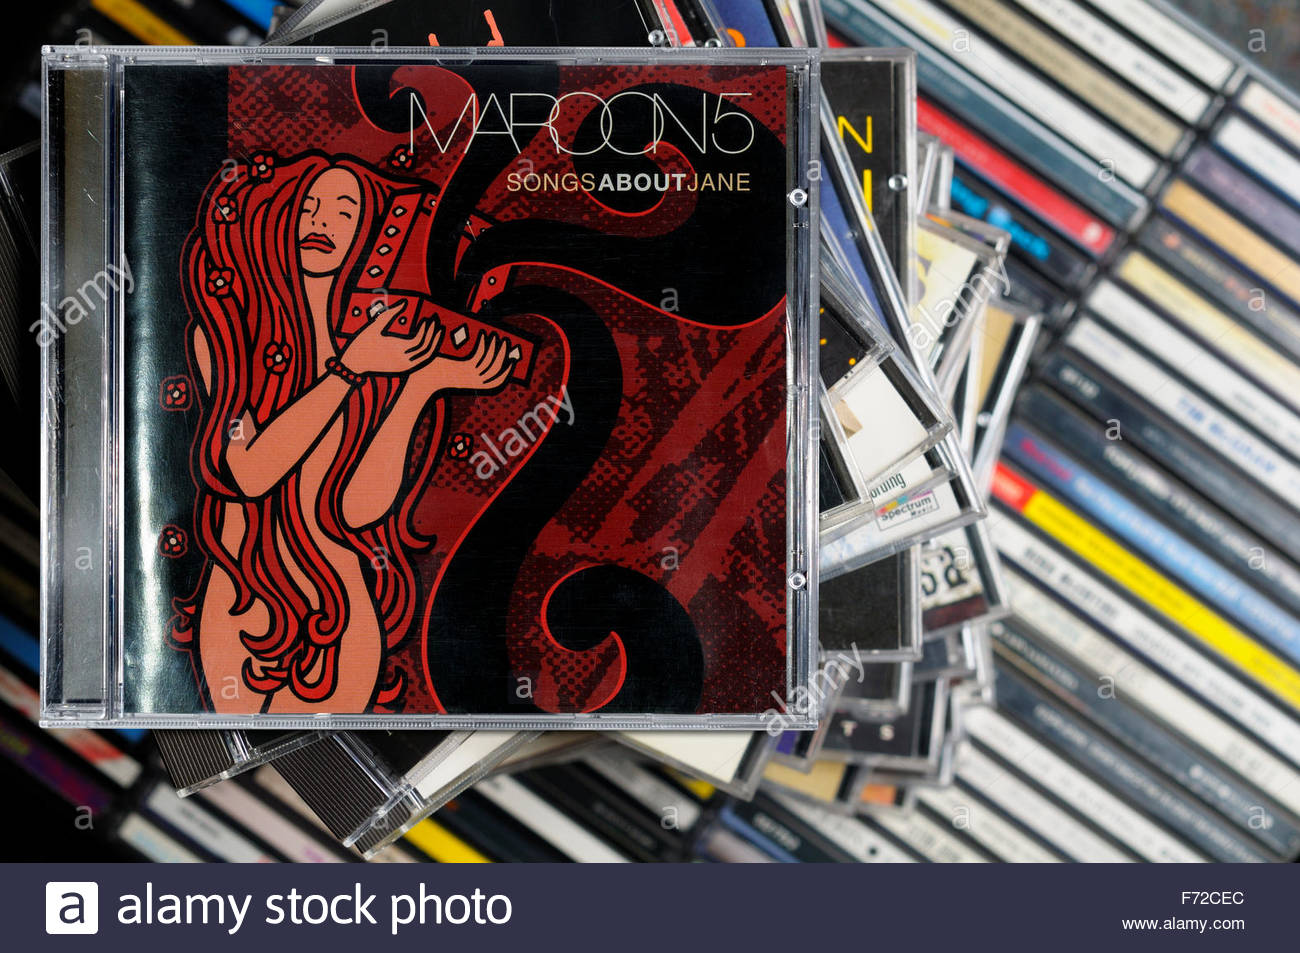 album songs about jane maroon 5